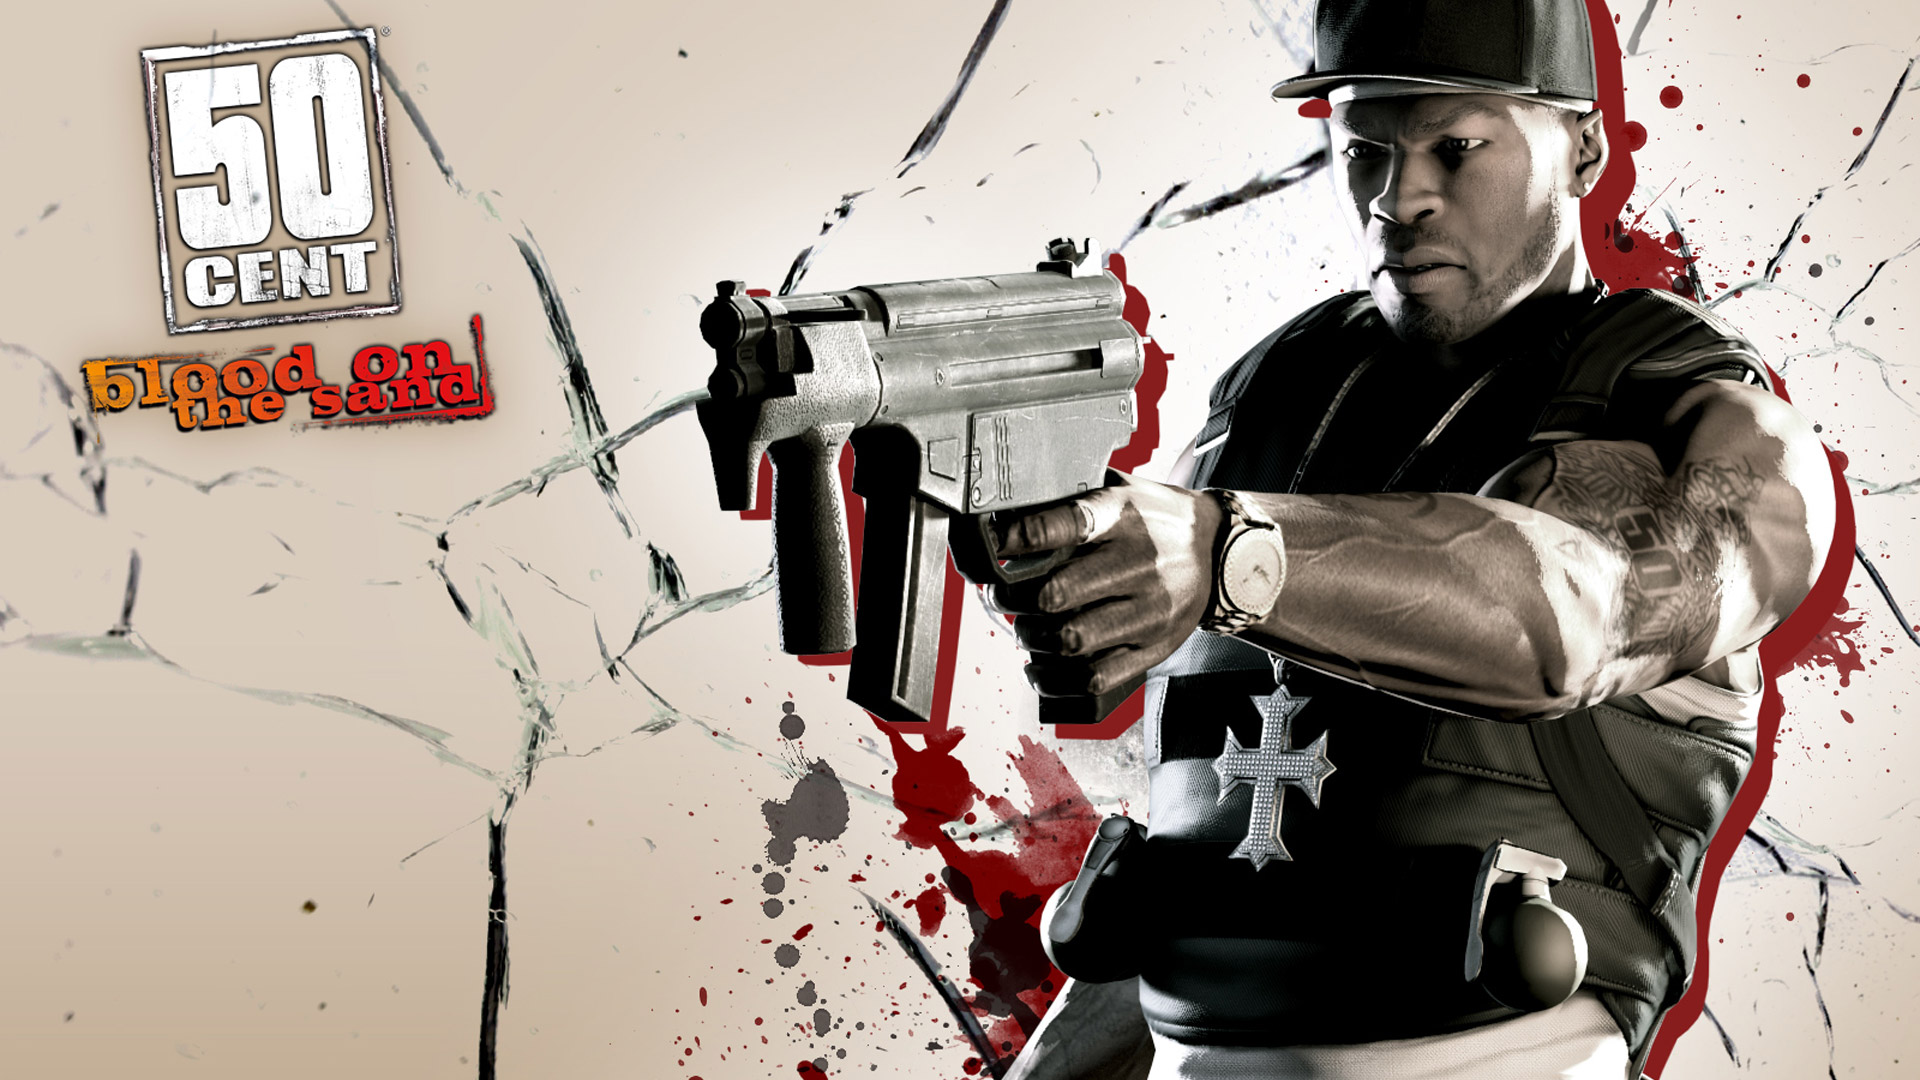 50 Cent: Blood on the Sand Wallpaper in 1920x1080